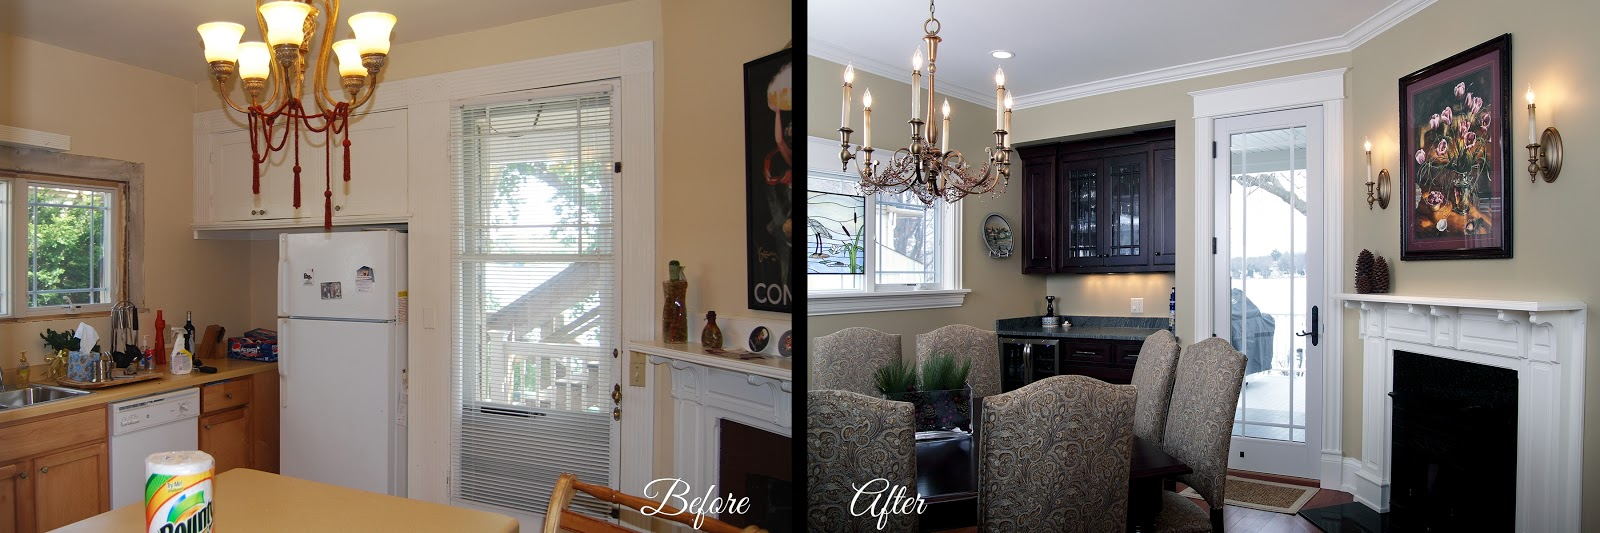 lake home remodel bartelt the remodleing resource dining room - Dining Room Remodel